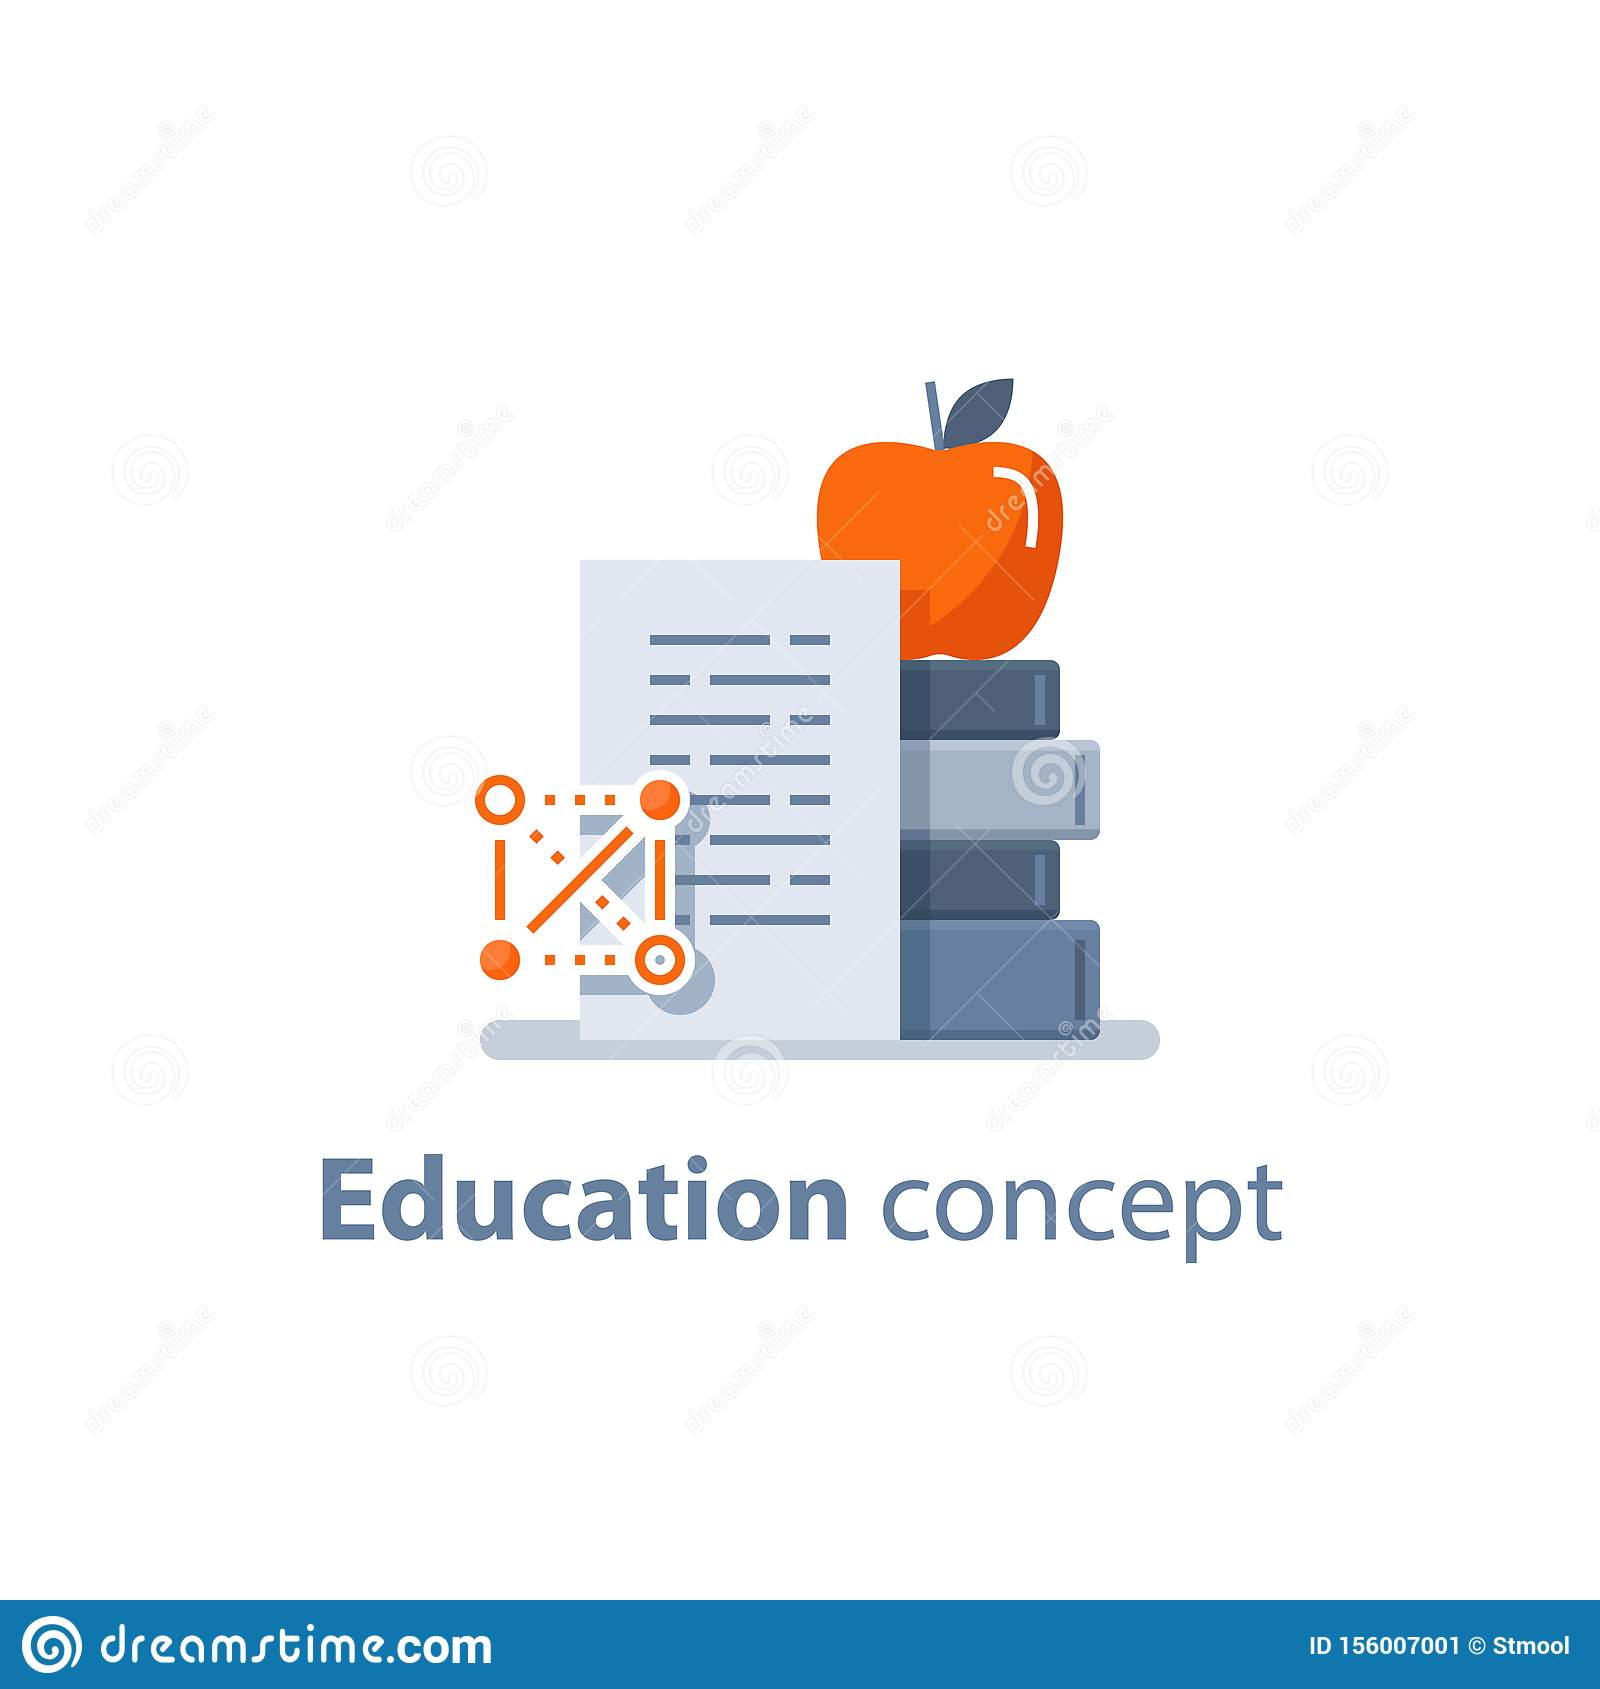 Acomplishment stack of books and apple on top, education concept, learning